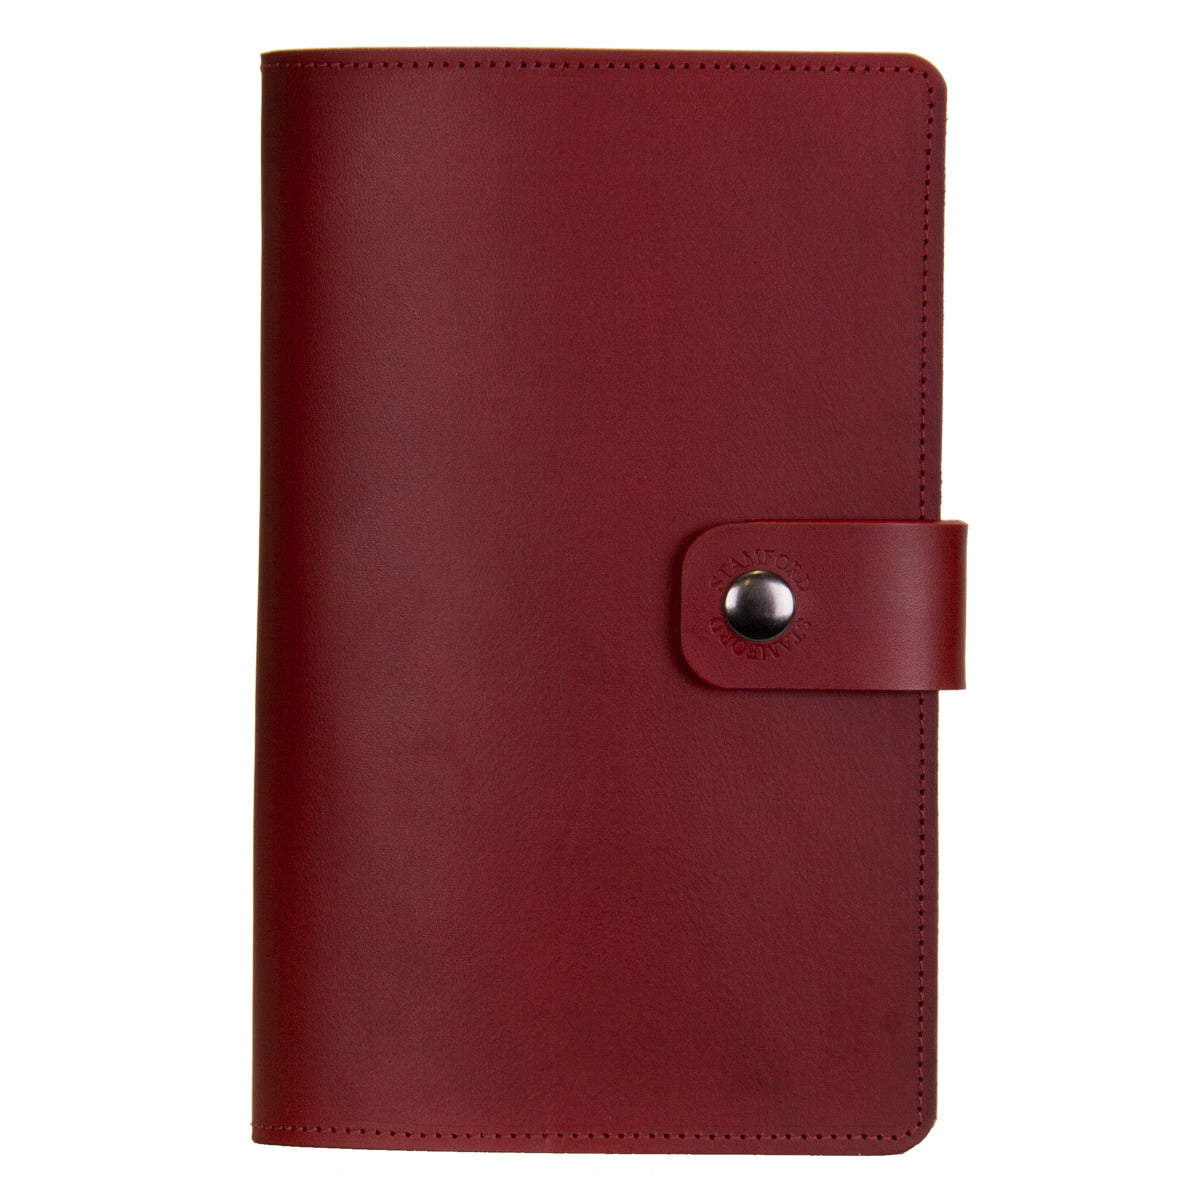 The Burghley Refillable Leather Journal Classic Range - Burgundy